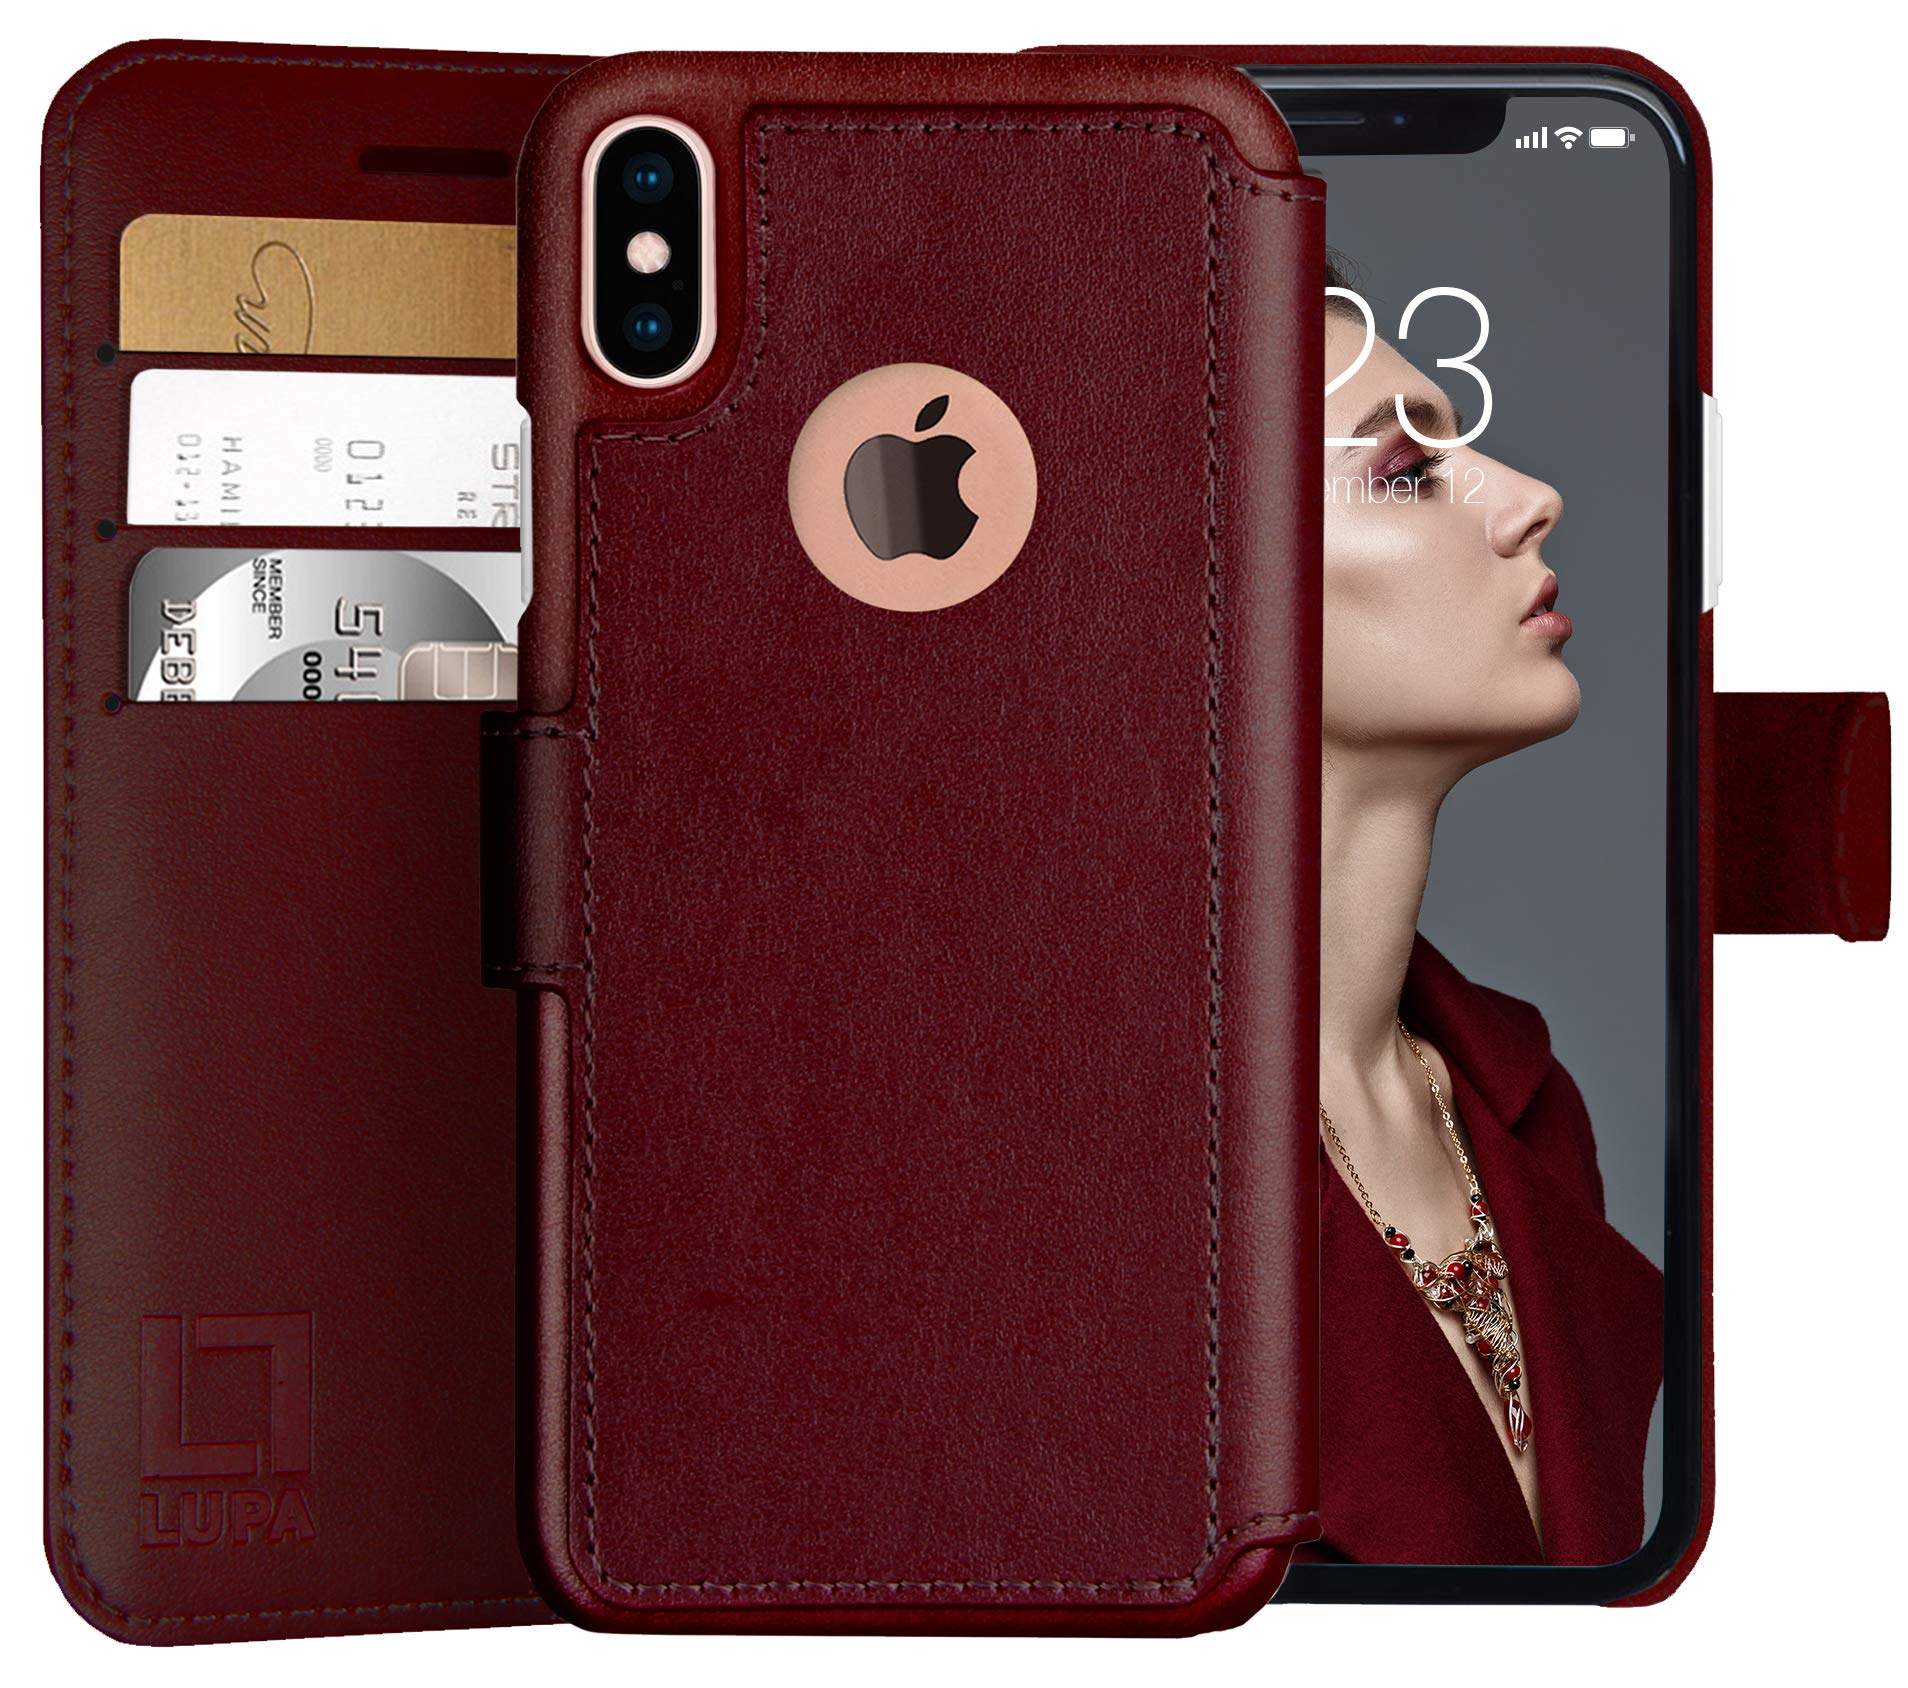 LUPA iPhone X Wallet Case -Slim & Lightweight iPhone X Flip Case with Credit Card Holder - iPhone 10 Wallet Case for Women & Men - Faux Leather i Phone Xs Purse Cases with Magnetic Closure - Burgundy by LUPA